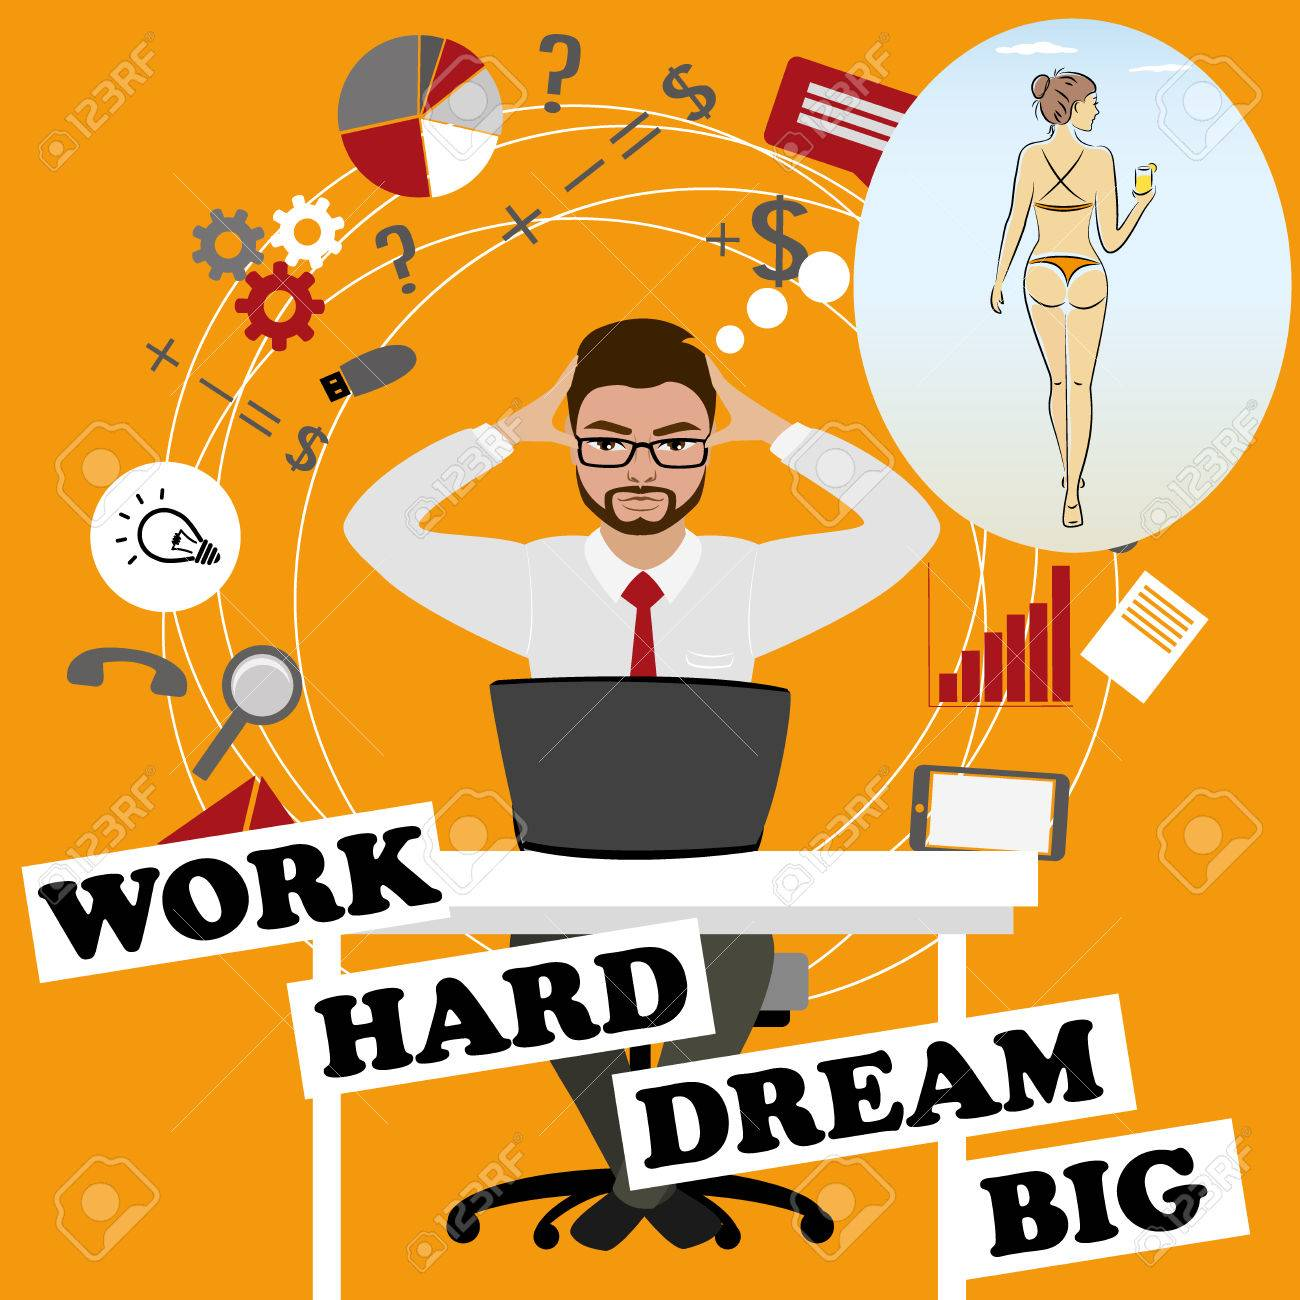 Attractive Vector Work Dream Businessman Dreams About Sexy Illustration Work Dream Businessman Dreams About Sexy Ny Work S Jokes Ny S Workshop bark post Funny Work Pictures